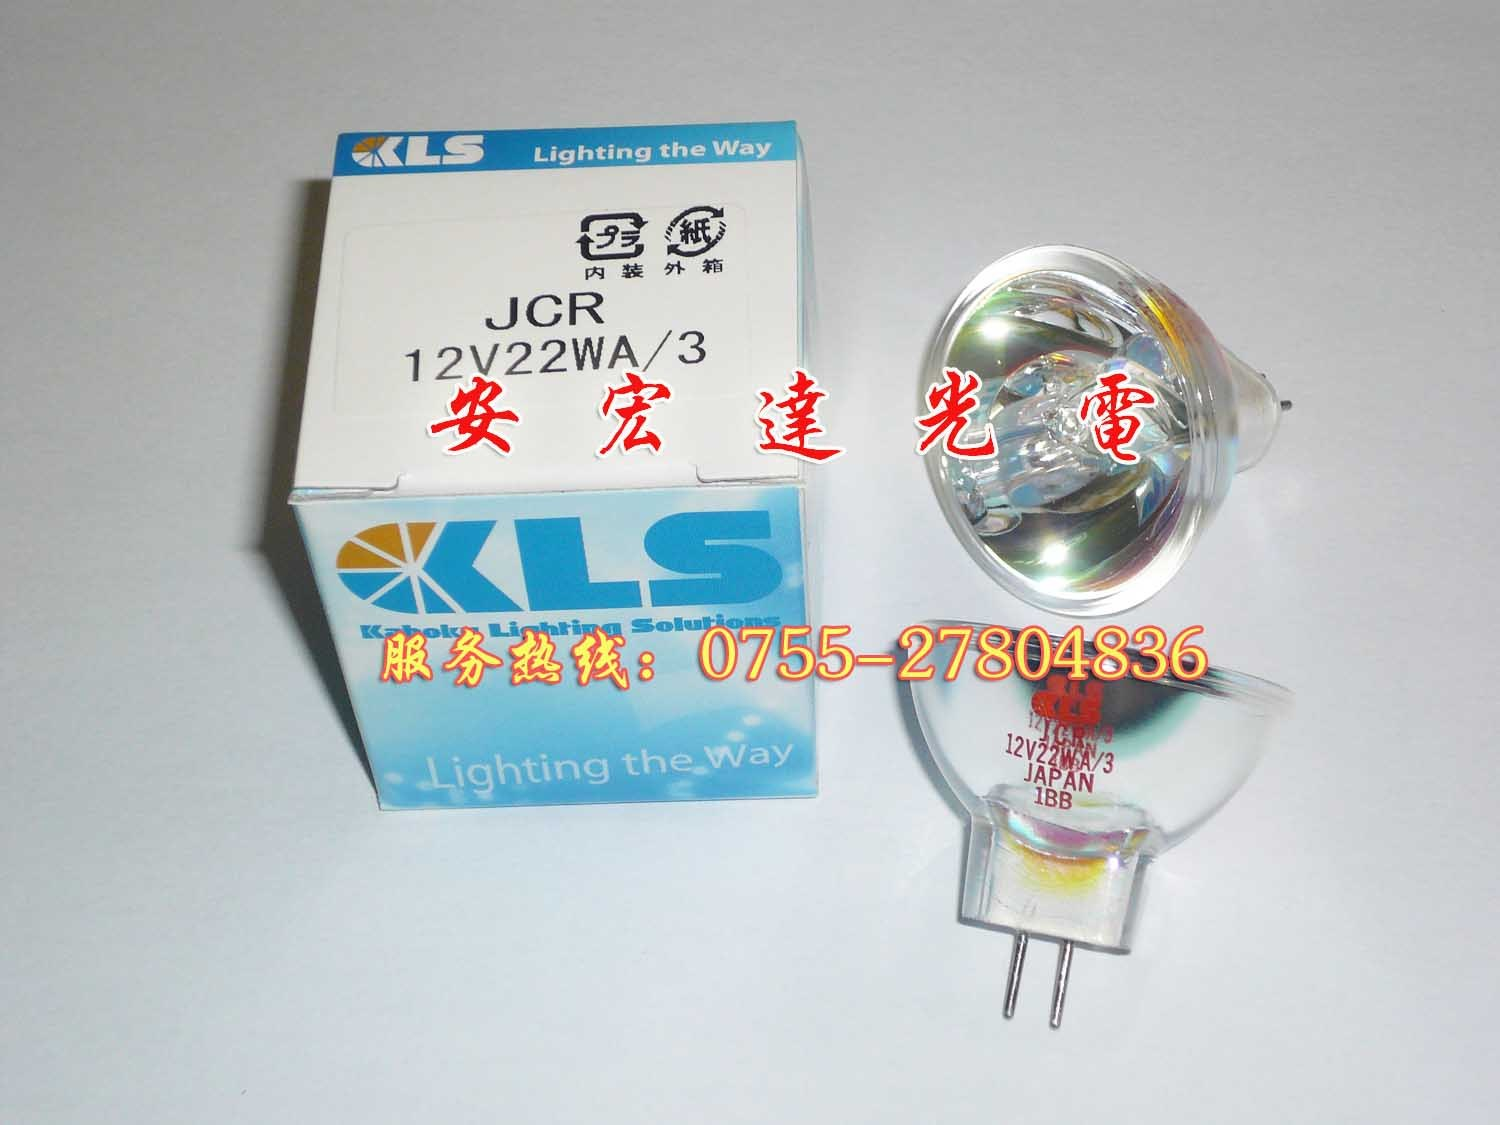 New Time-limited White Tungsten Halogen Lamp Indicator Light Kls Microscope Bulb Jcr 12v22wa 3 , Optical Instrument Light